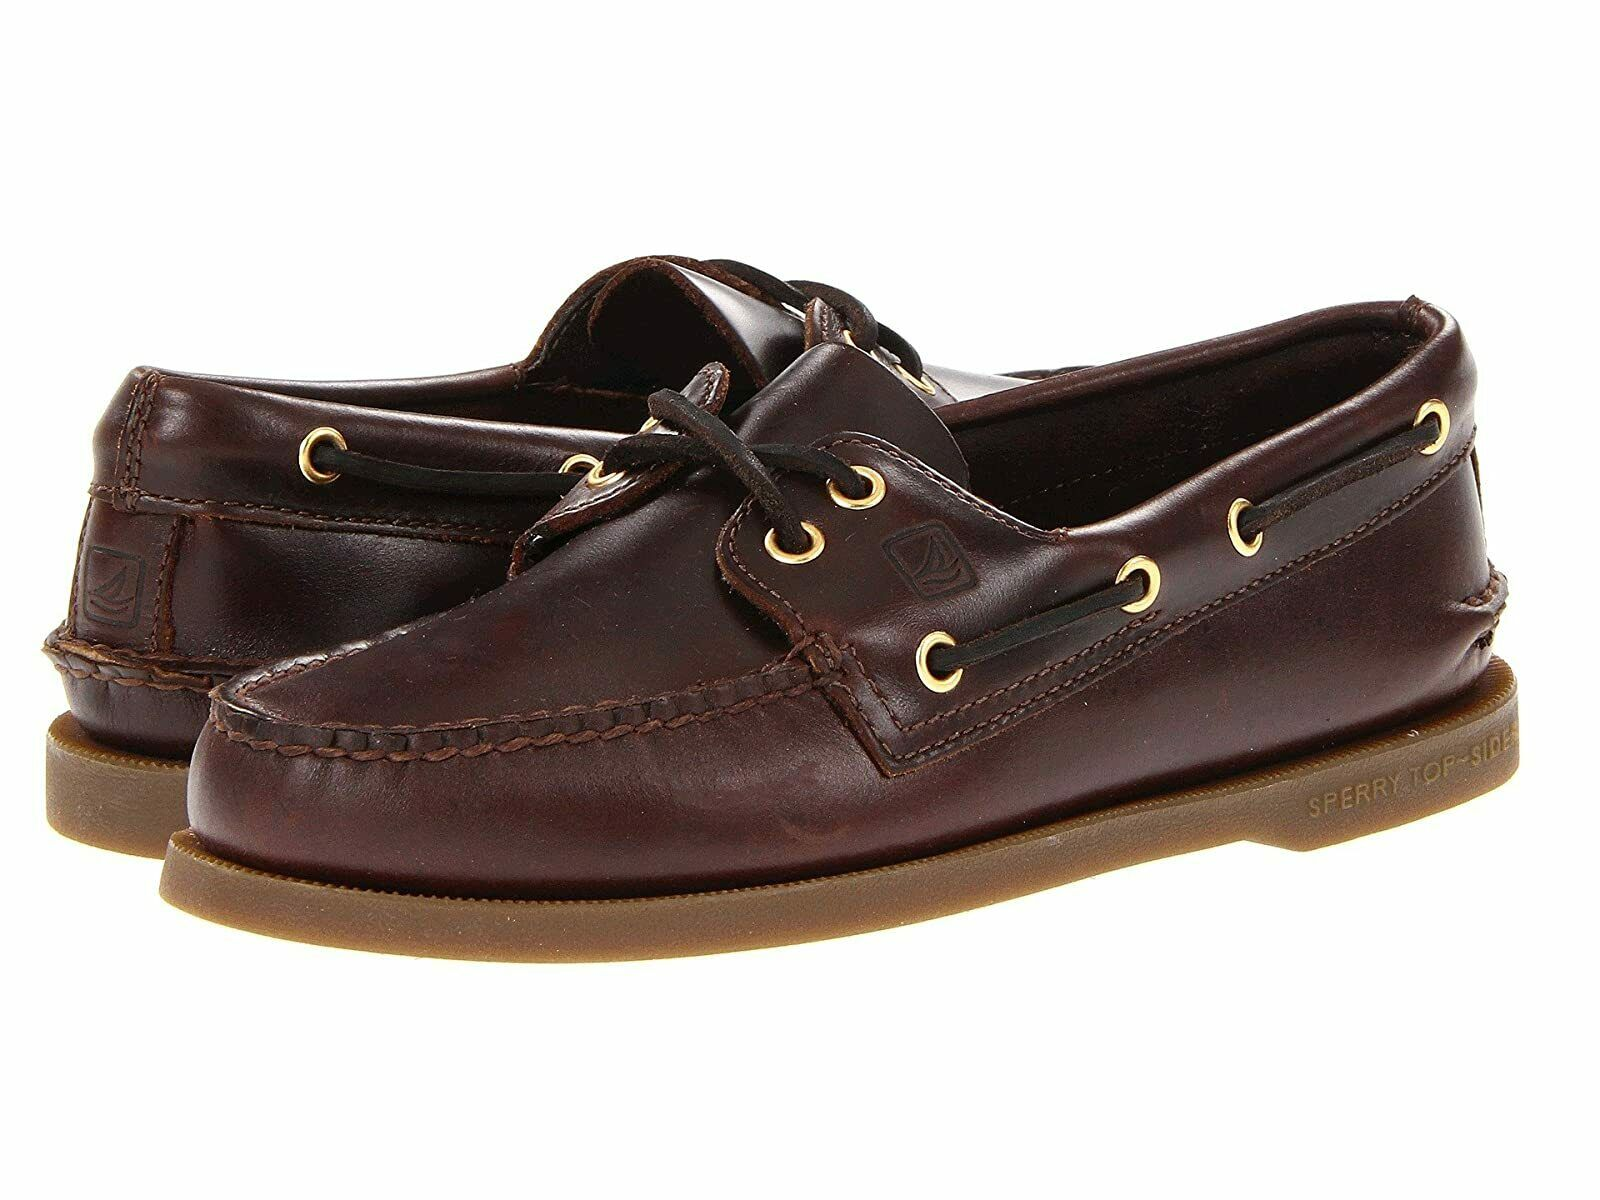 Man's Boat Shoes Sperry Authentic Original